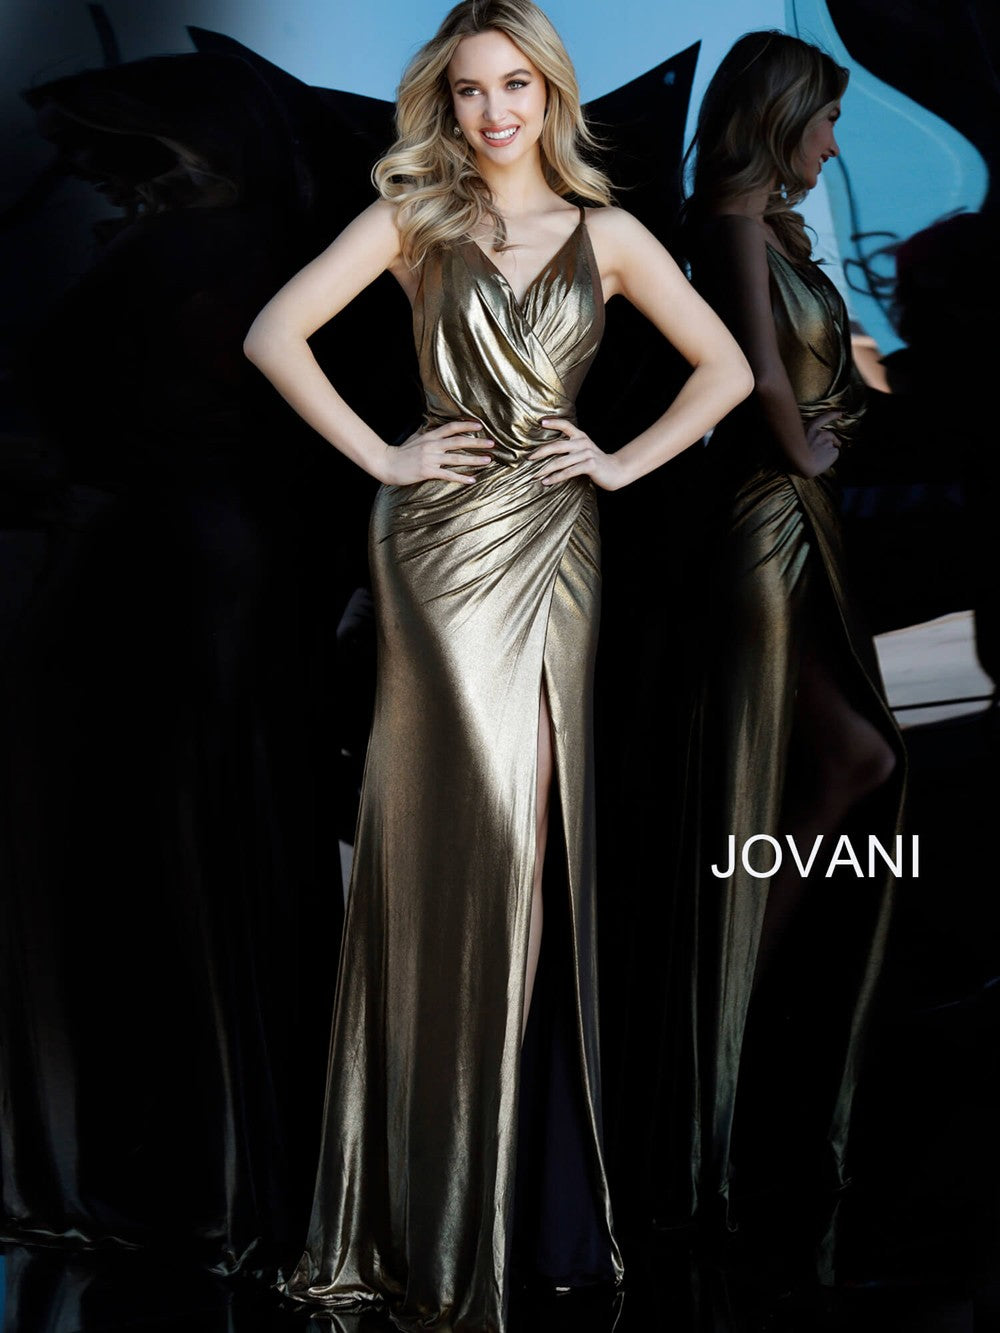 JOVANI 67934 Backless Metallic Prom Dress